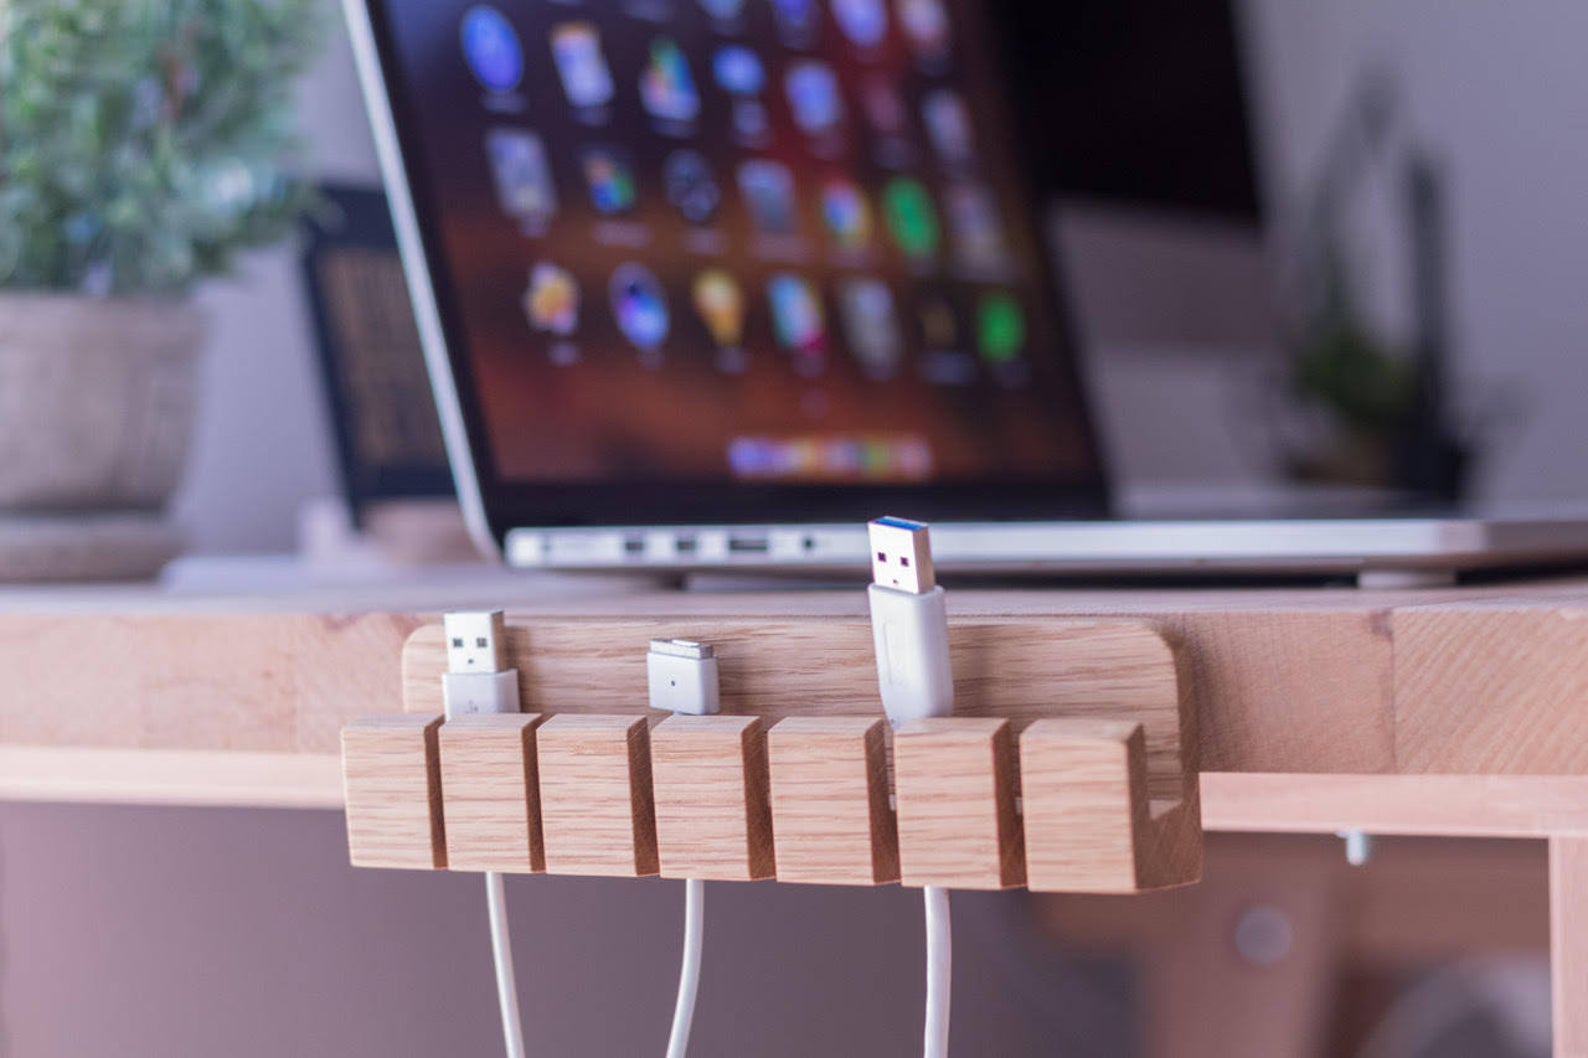 Office-organization-ideas-cable-holder